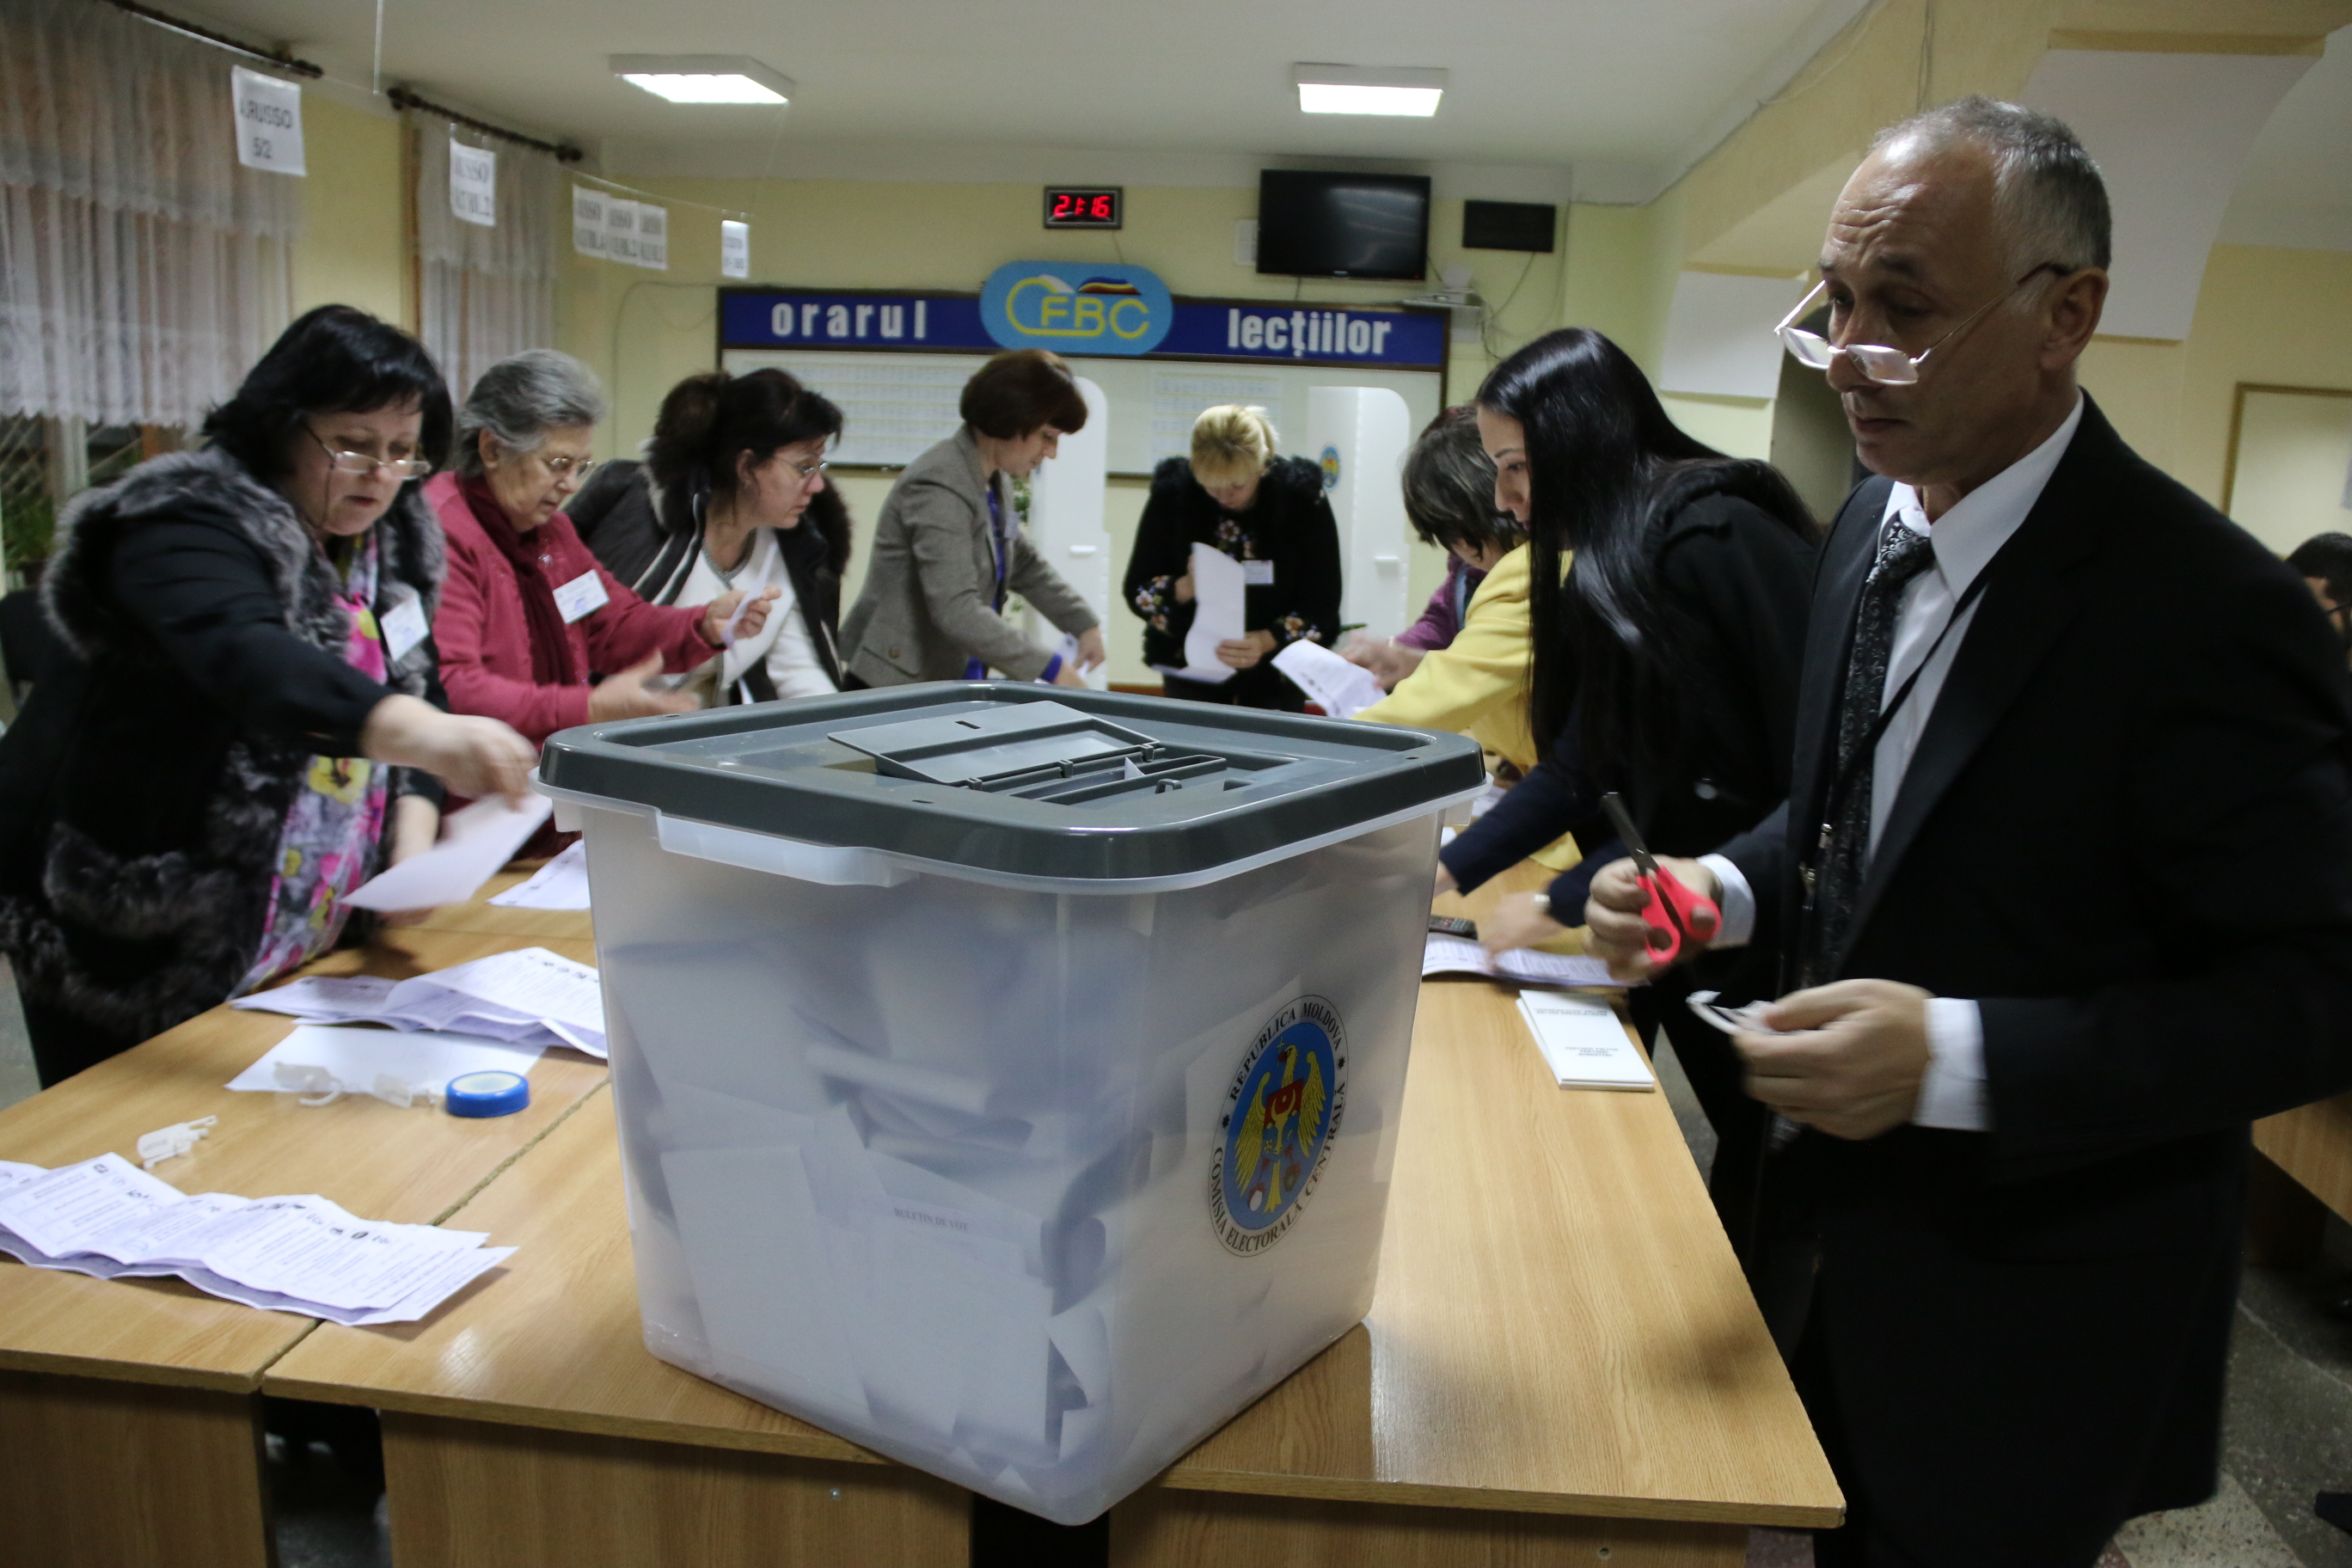 Polling Station in Chisinau, Moldova during elections in 2014 (photo:flickr/OSCE)